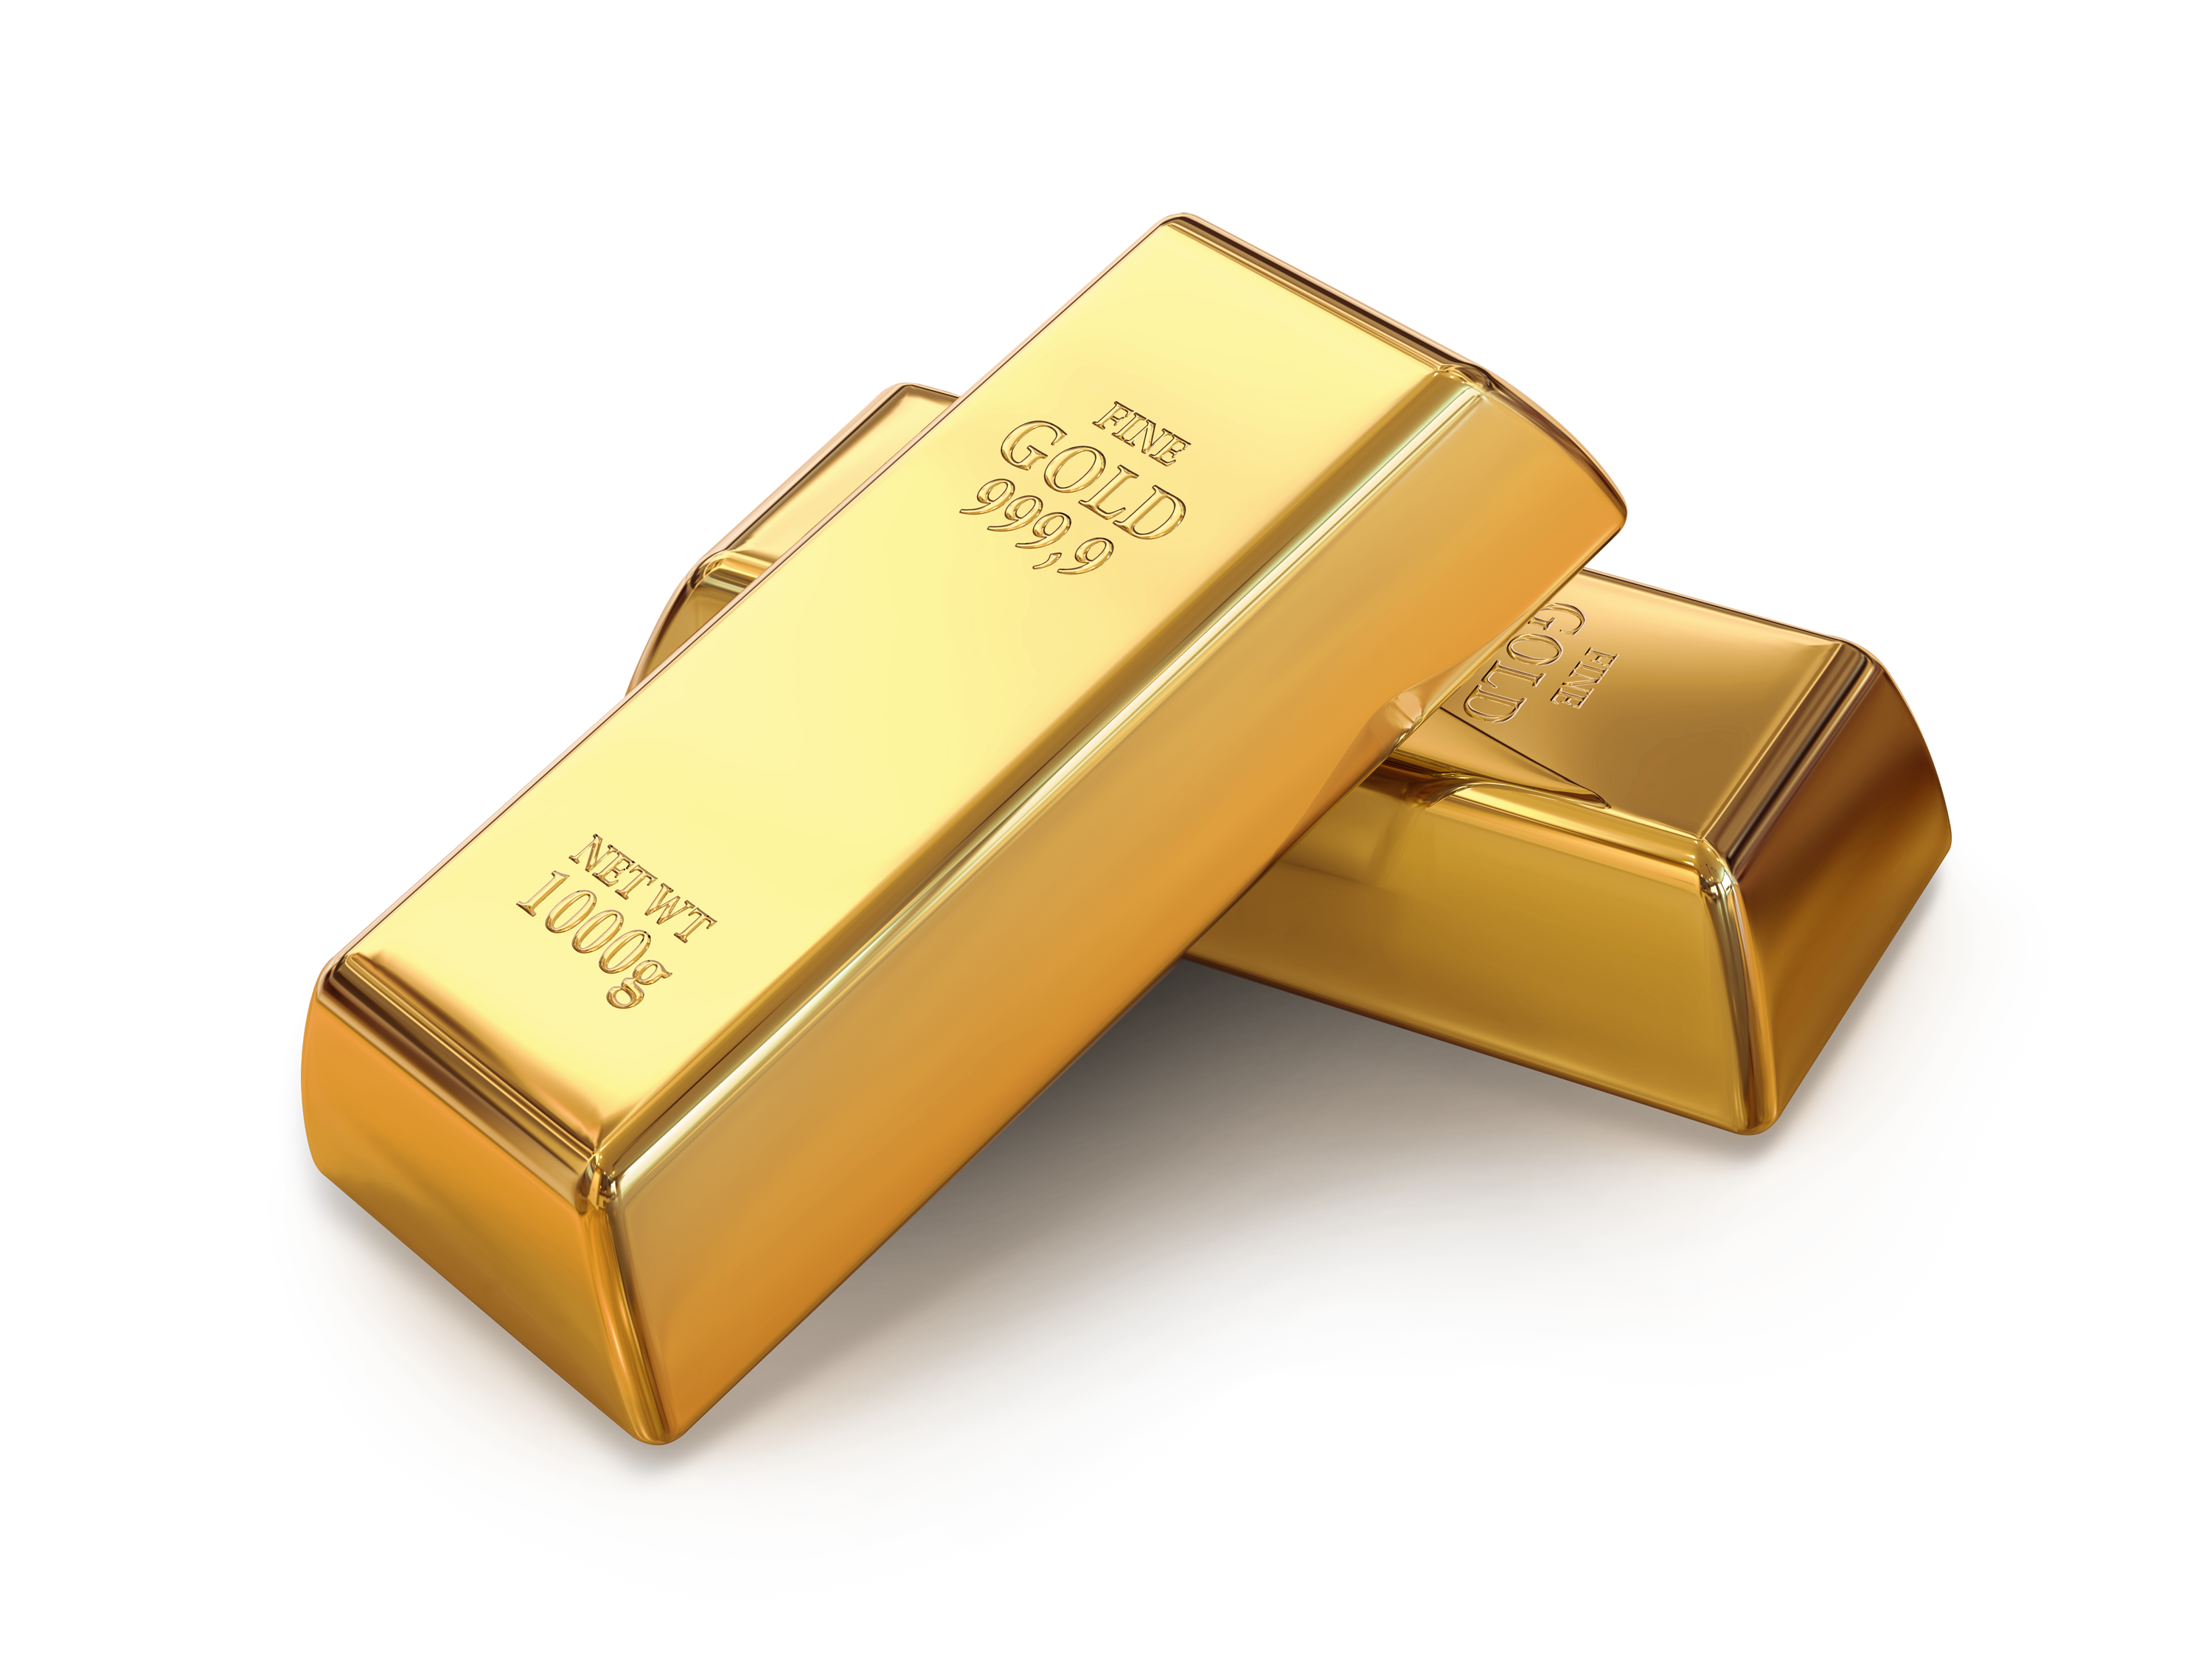 Two Gold Bars PNG Image.